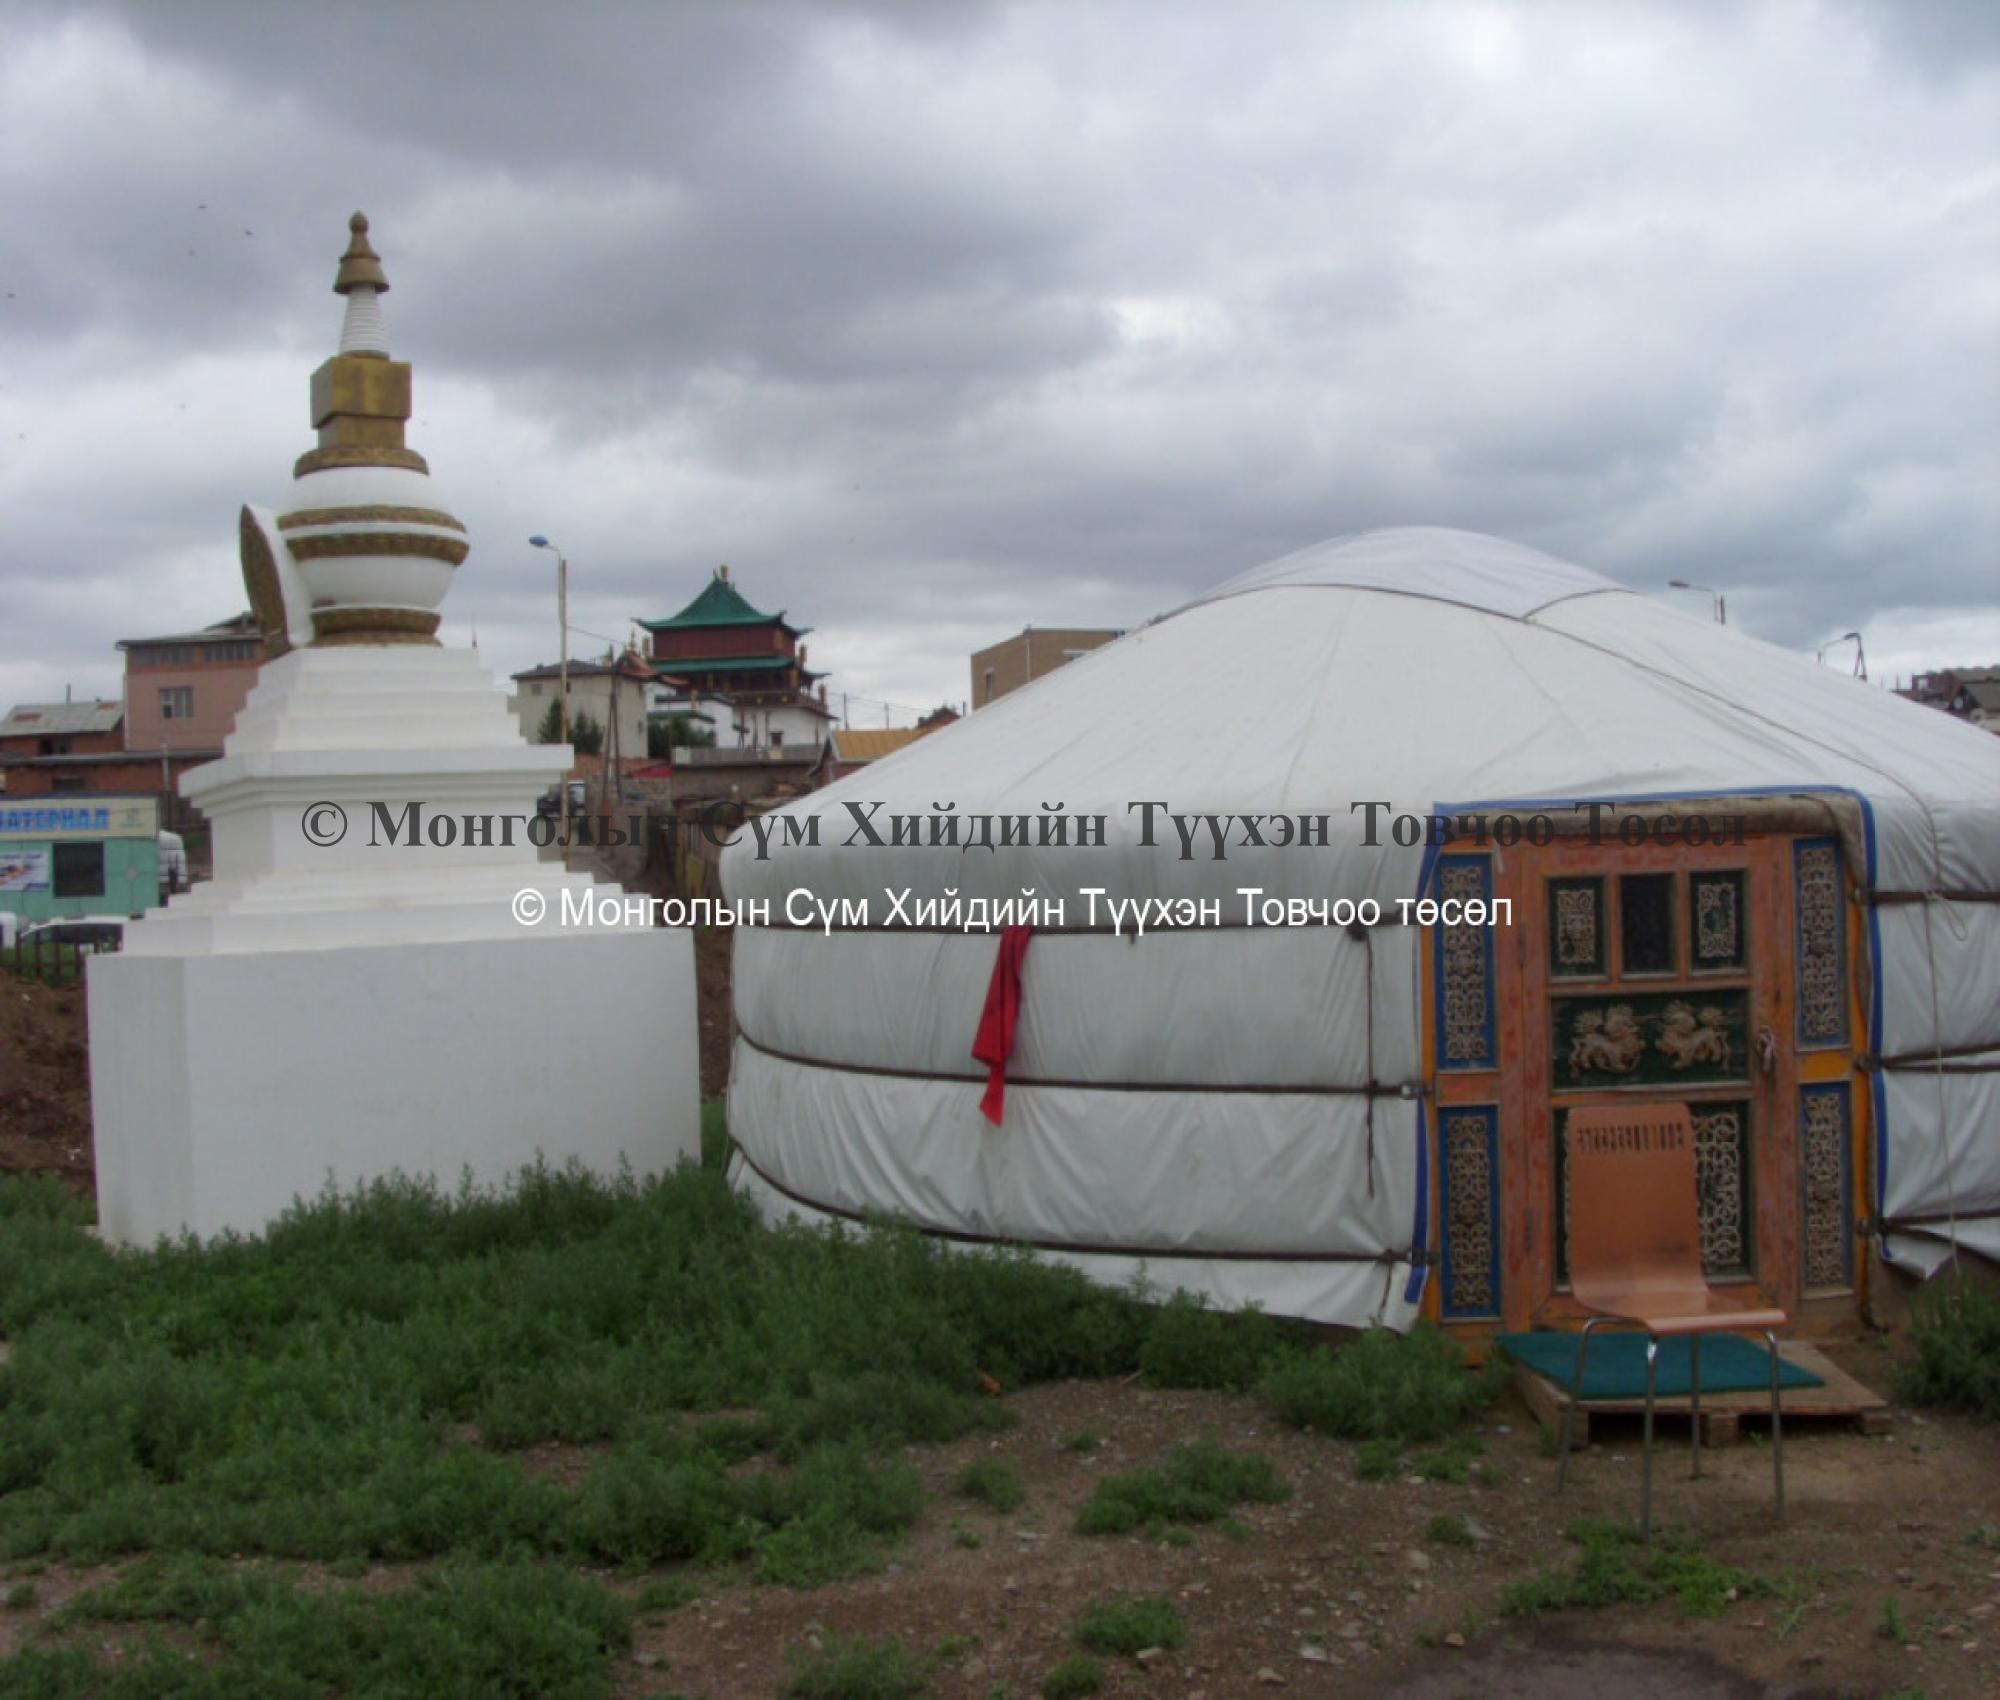 Yurt temple of Güshig datsan with a stupa